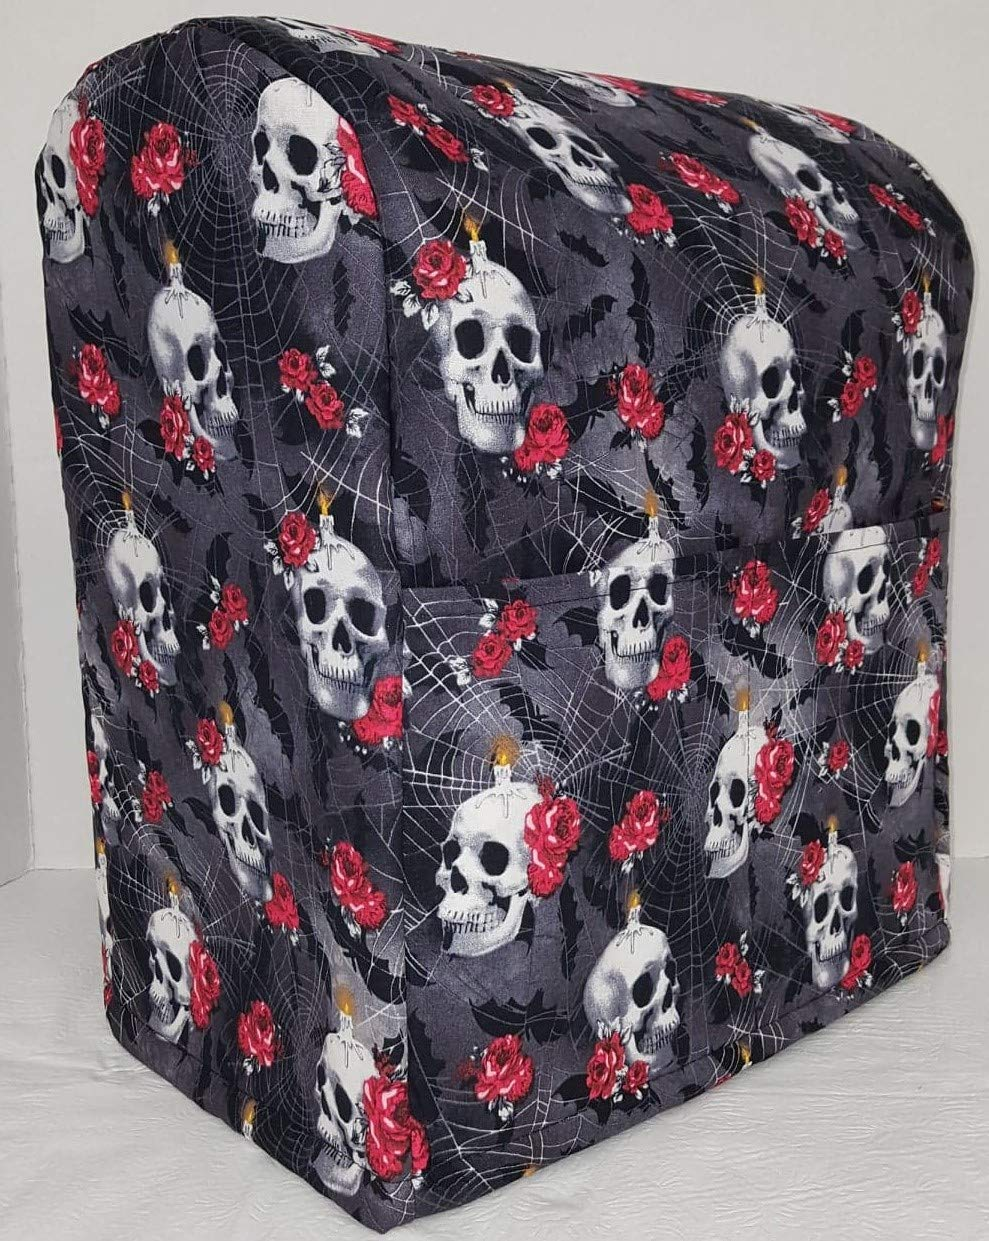 Penny's Needful Things Skulls Webs & Roses Cover Compatible for Kitchenaid Stand Mixer (All Skulls Webs & Roses, 4.5,5,6qt Lift Bowl)